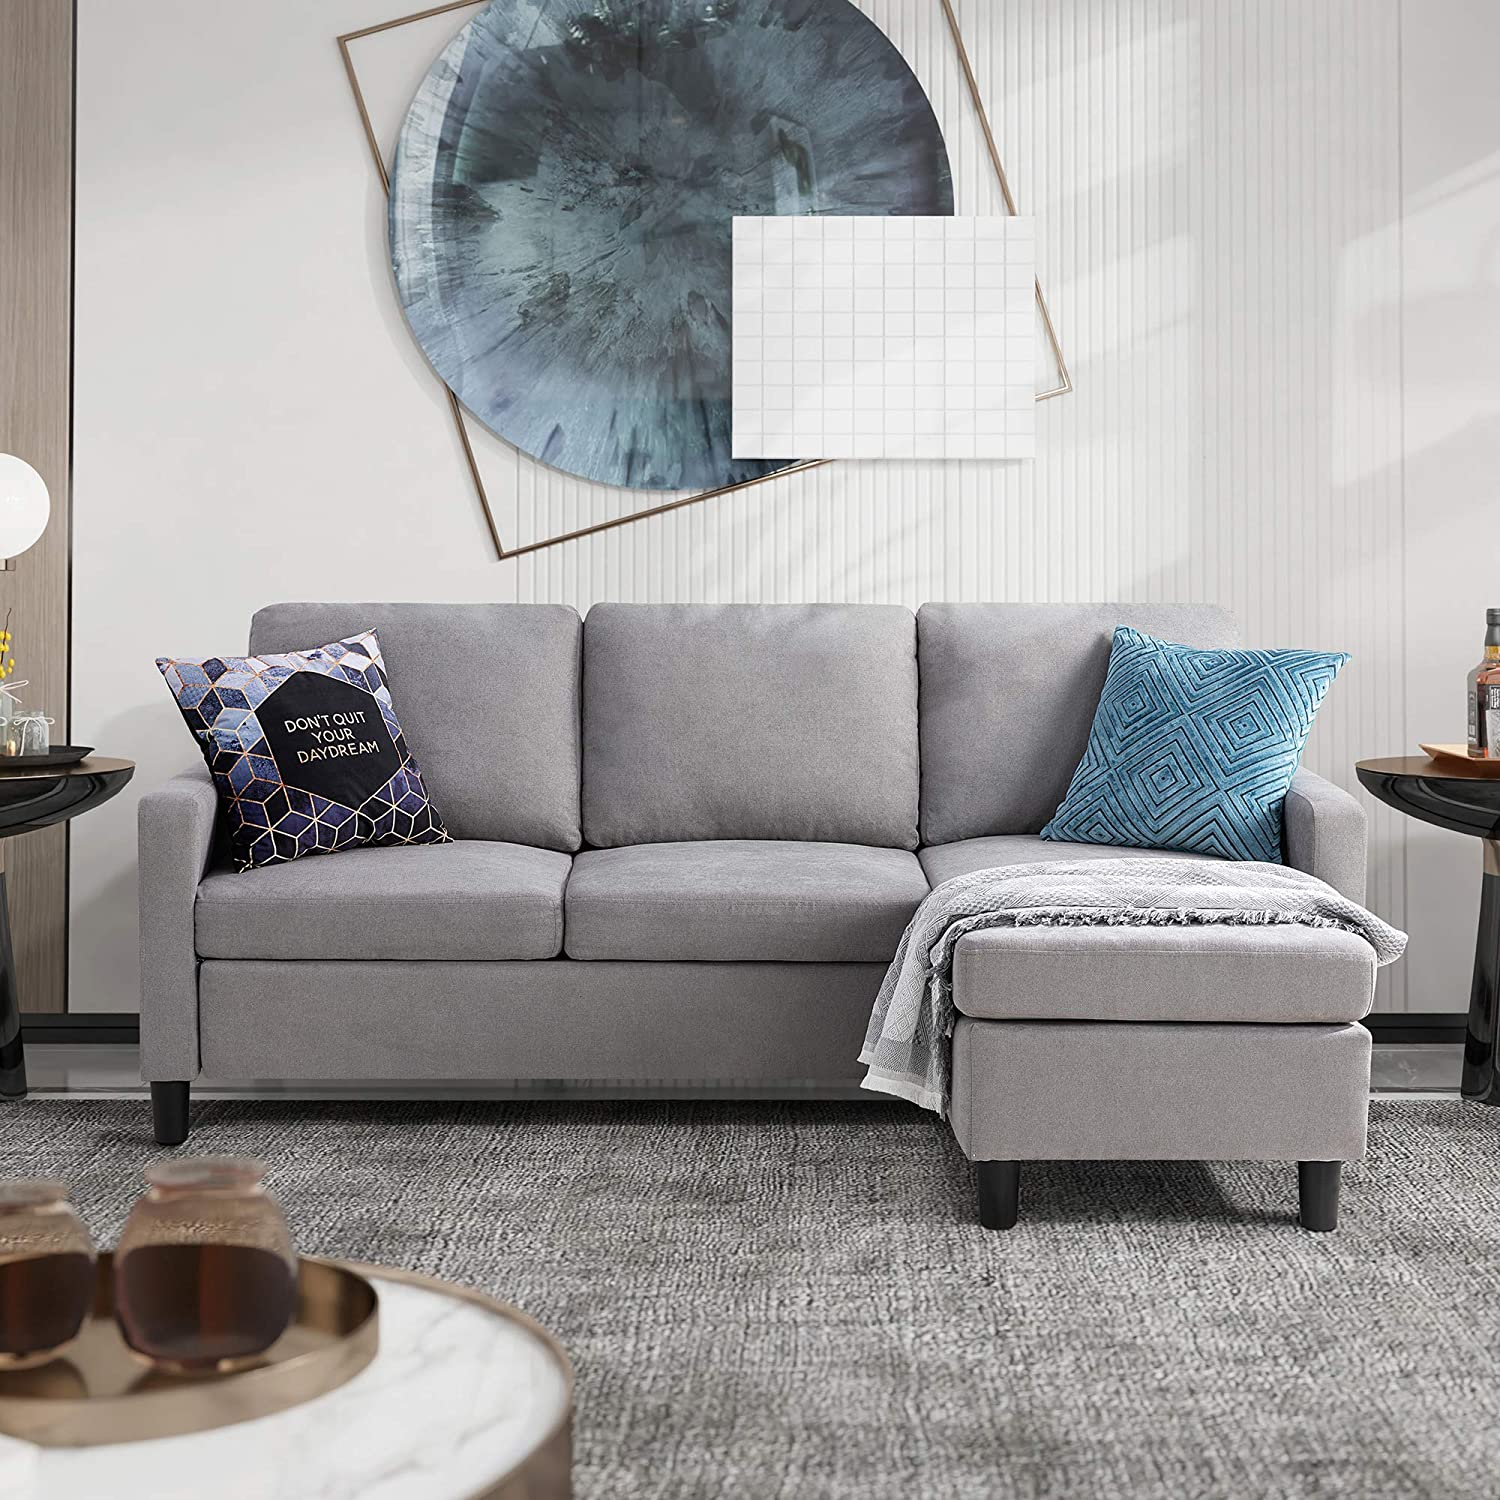 Walsunny Convertible Sectional Sofa for Small Space L-Shaped Couch with Modern Linen Fabric (Light Grey)